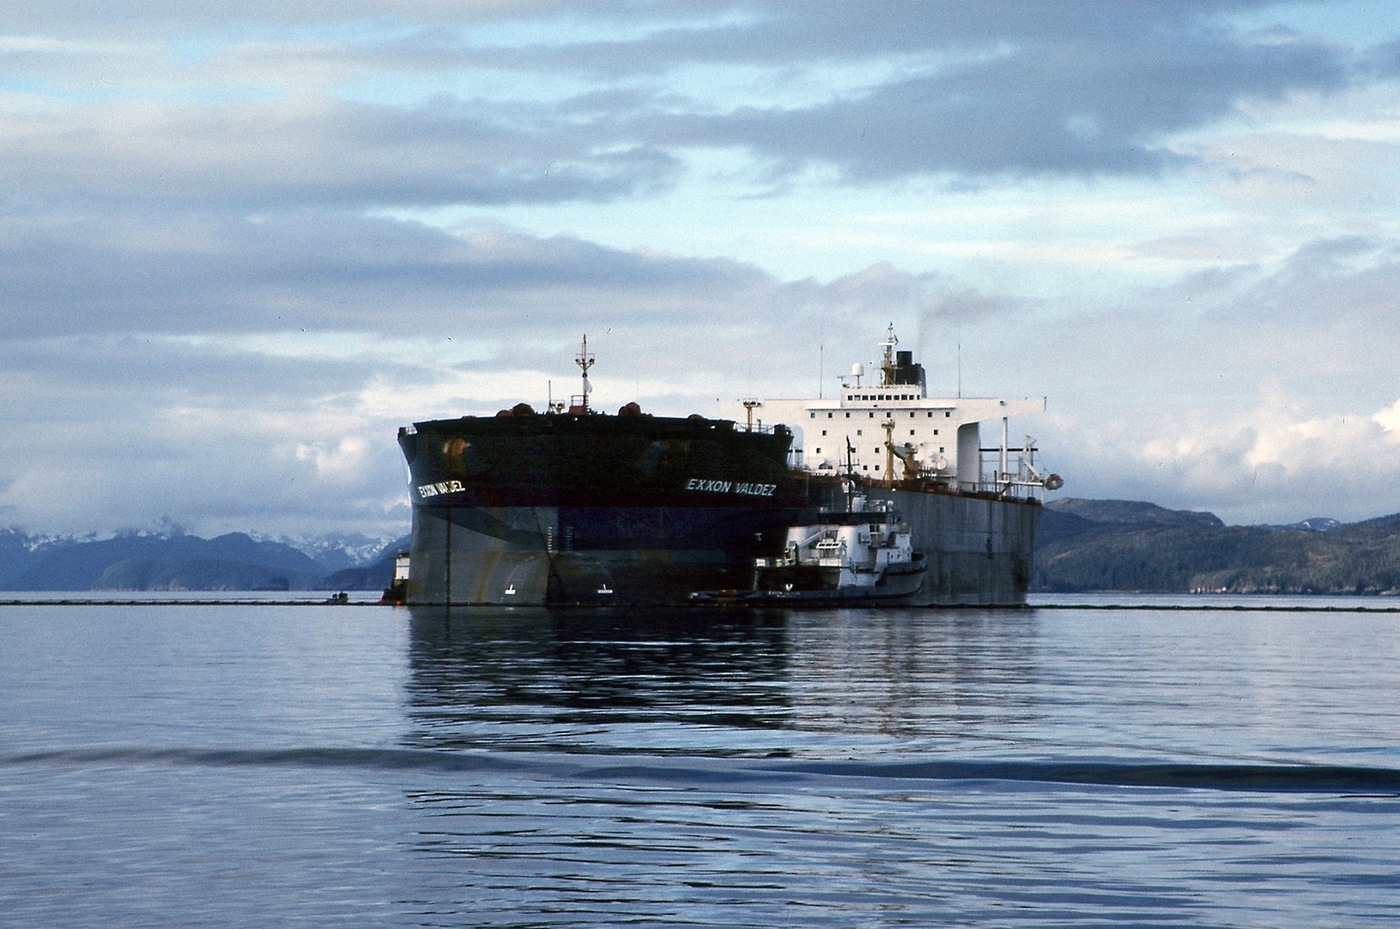 Twenty-five years after the massive Exxon Valdez oil spill in Alaska, the FBI continues to support its partners on environmental crime cases. (NOAA photo)